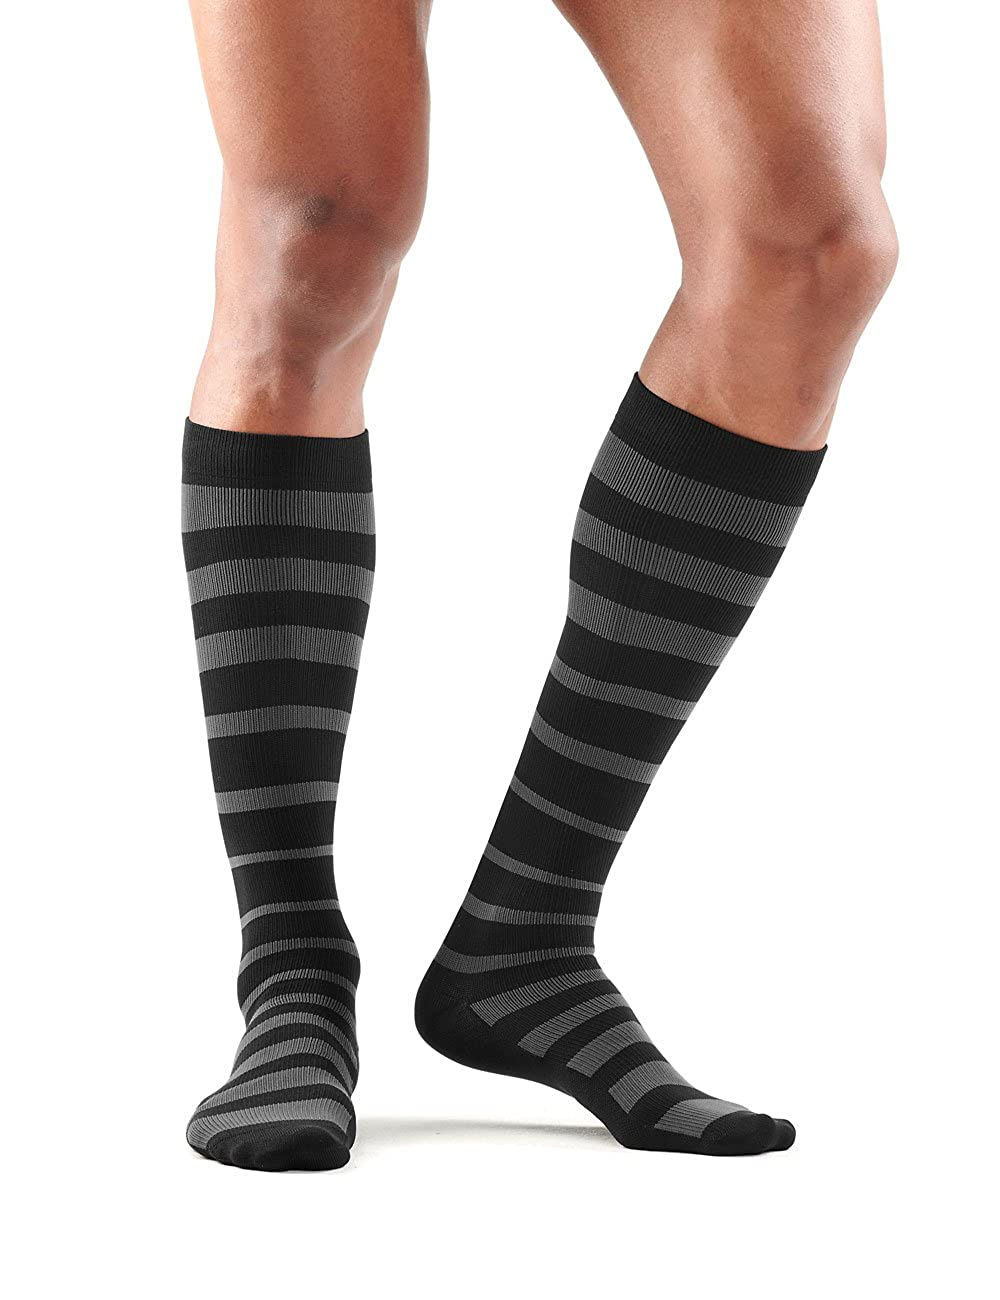 SKINS Men's Recovery T-shirt Collant Chaussettes - SS18